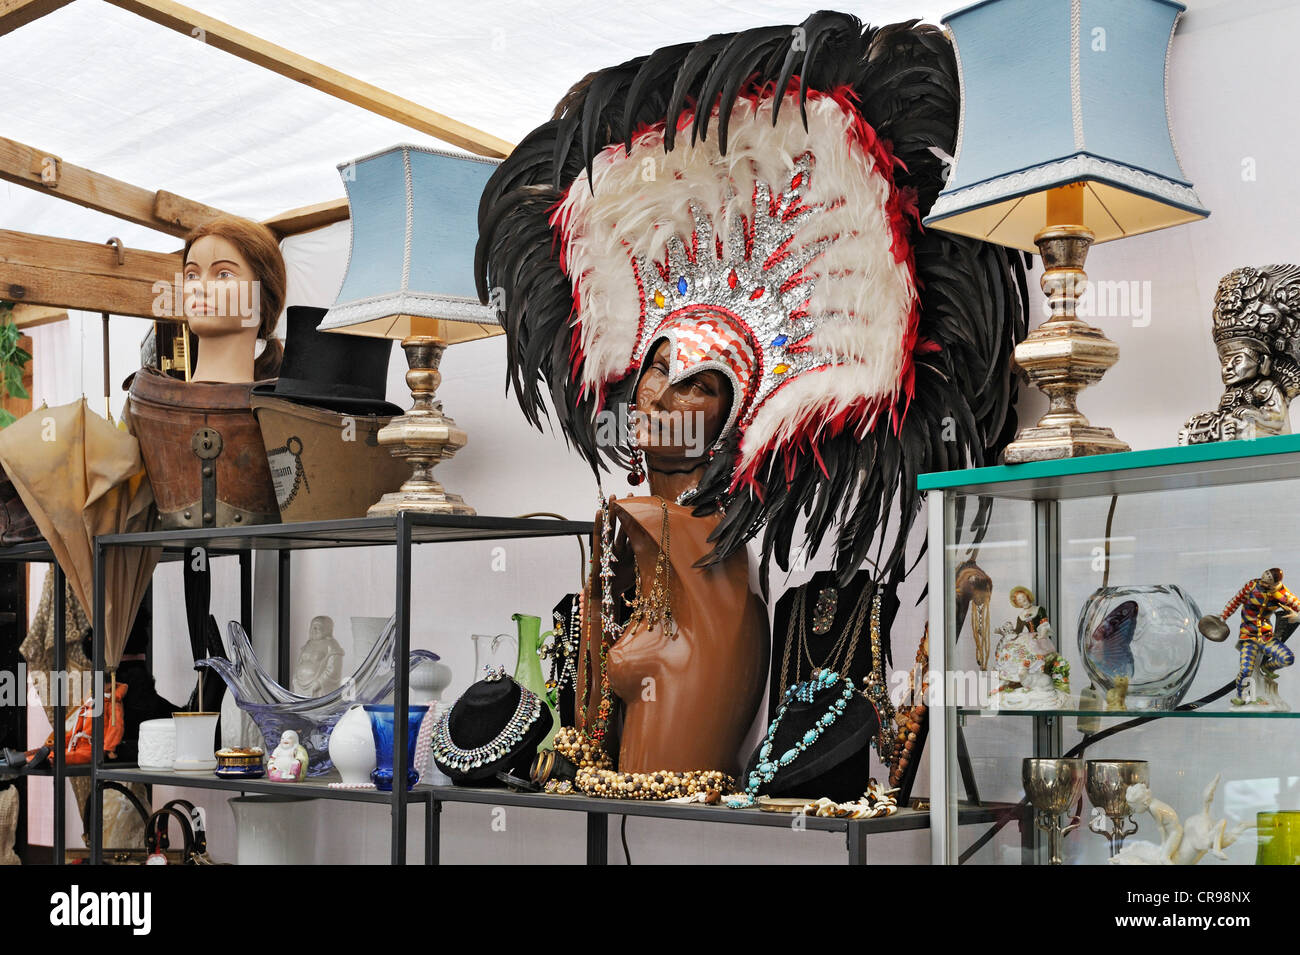 Headdress with feathers, odds and ends, Auer Dult market, Munich, Bavaria, Germany, Europe - Stock Image